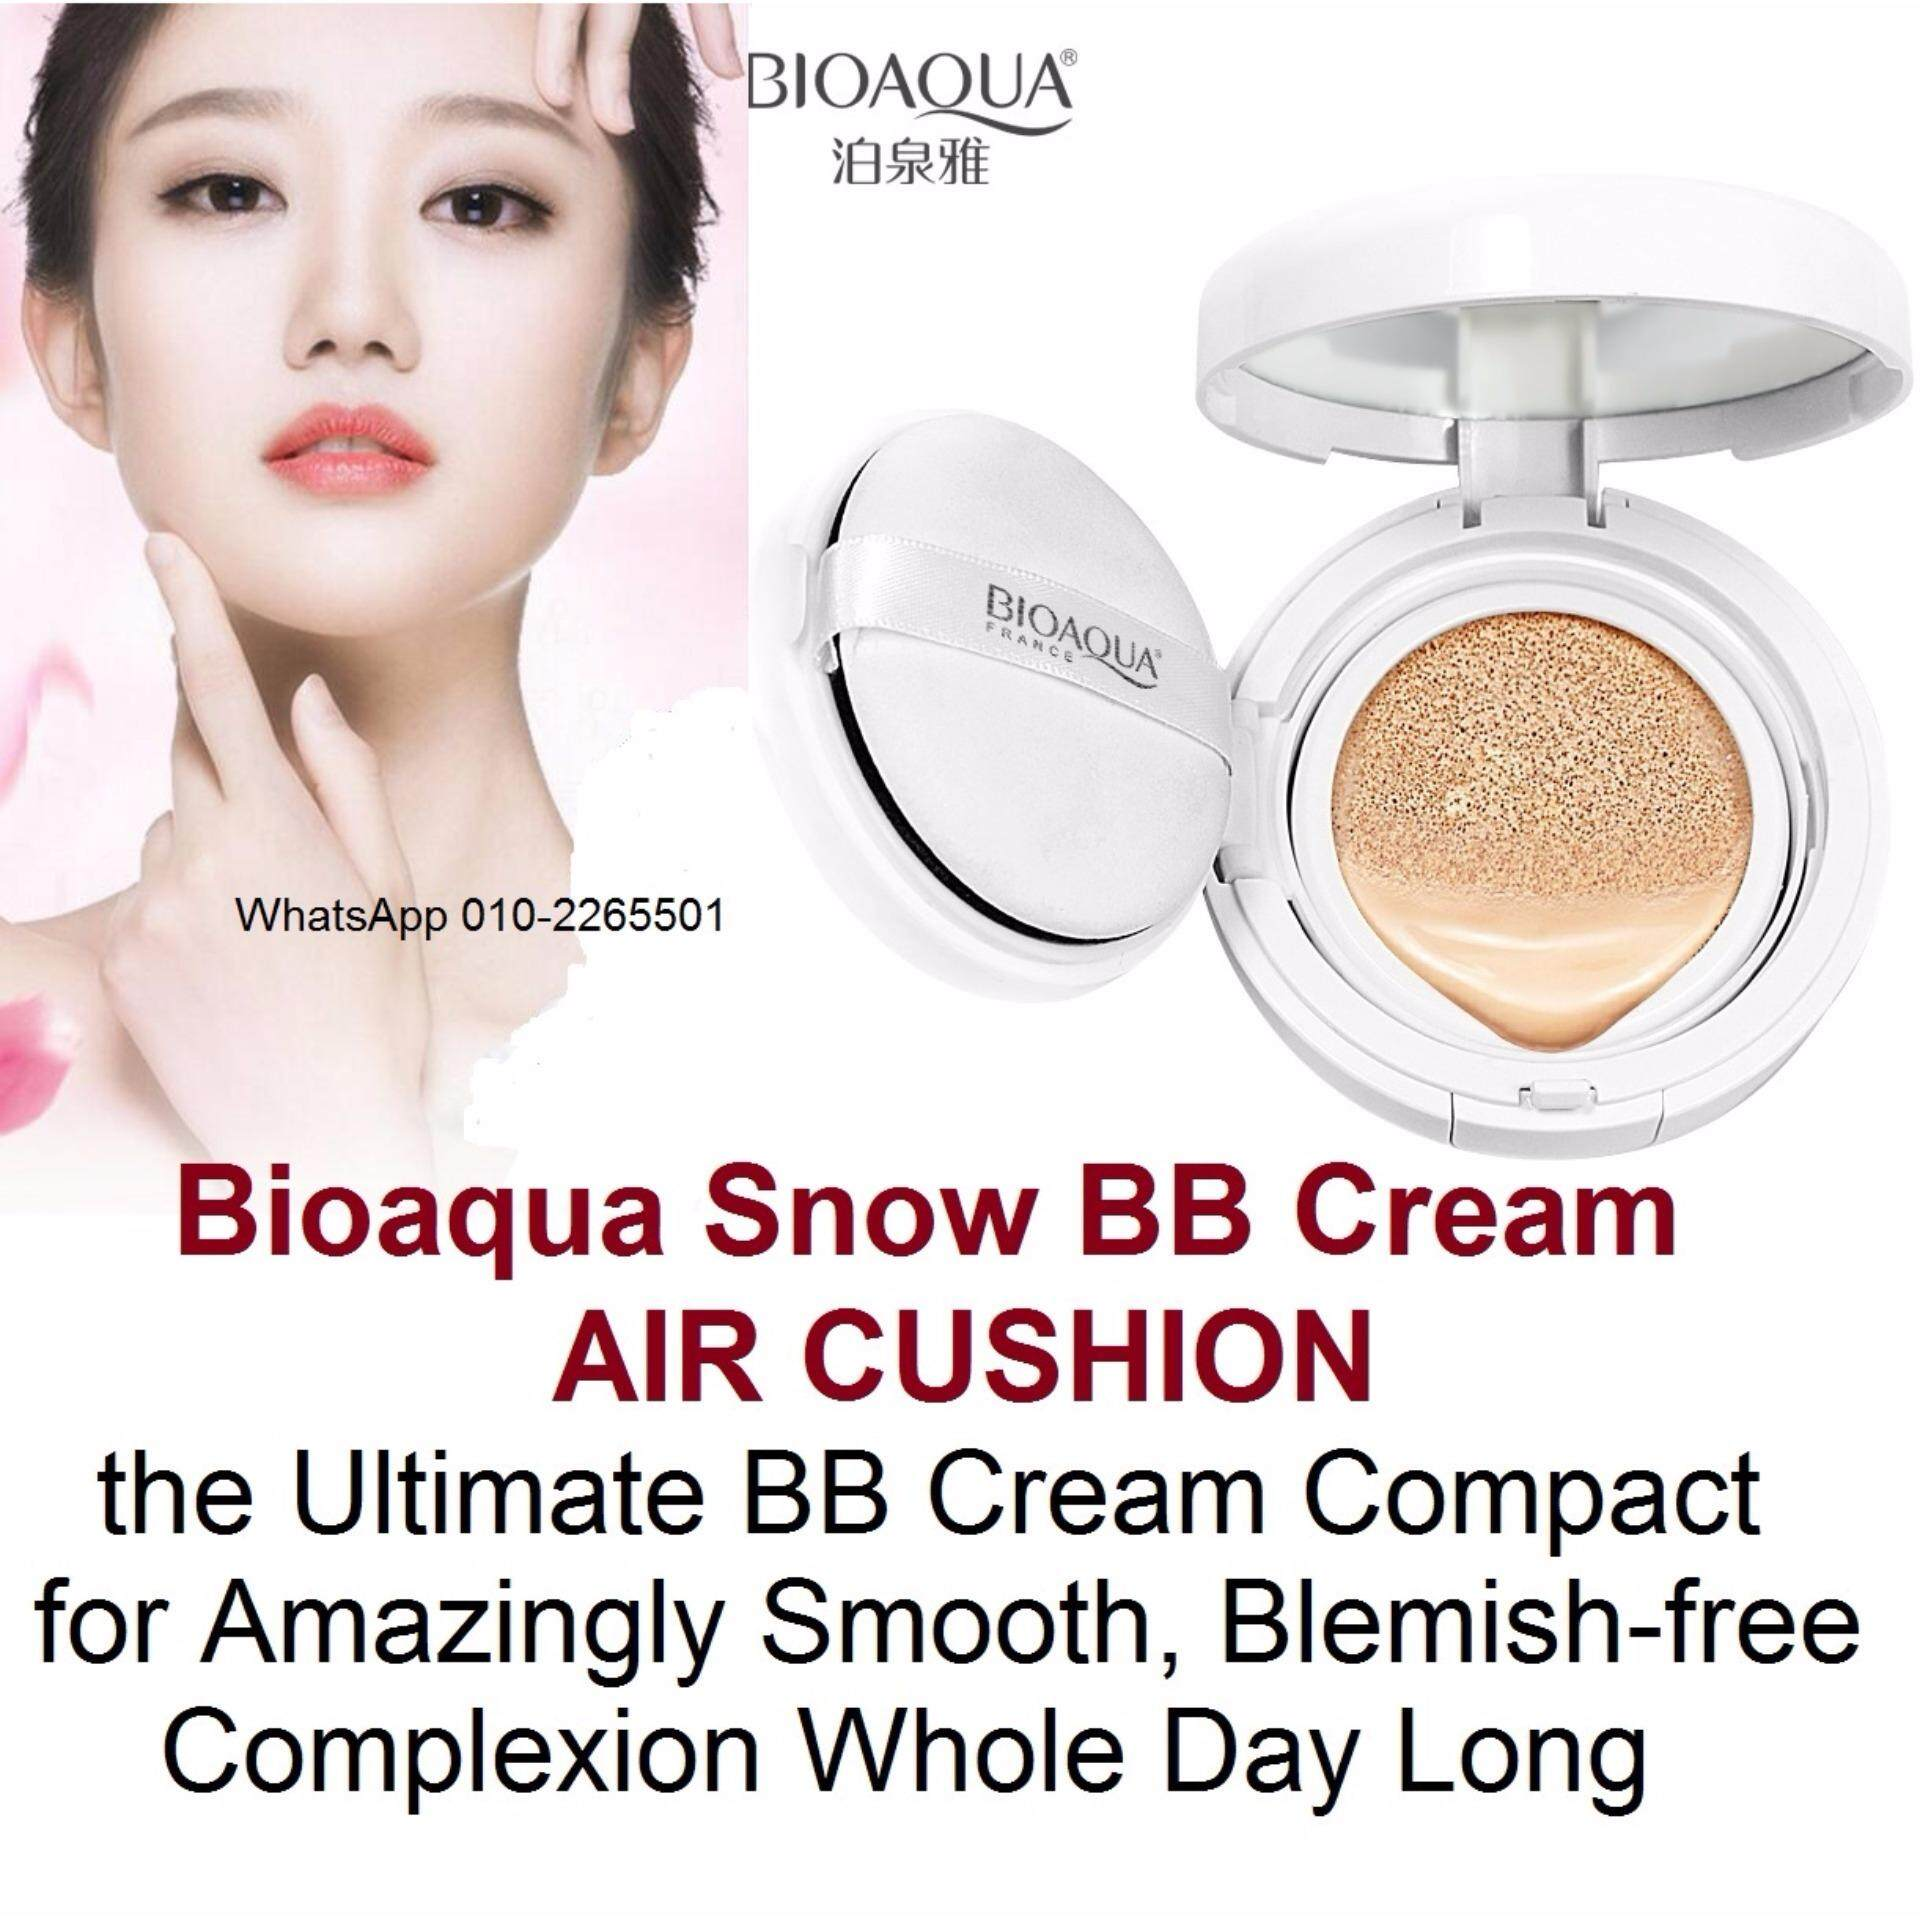 Bioaqua Snow Bb Cream Air Cushion Spf50 Extreme Bare Make Up Foundation Light Skin Complete Coverage Compact Natural